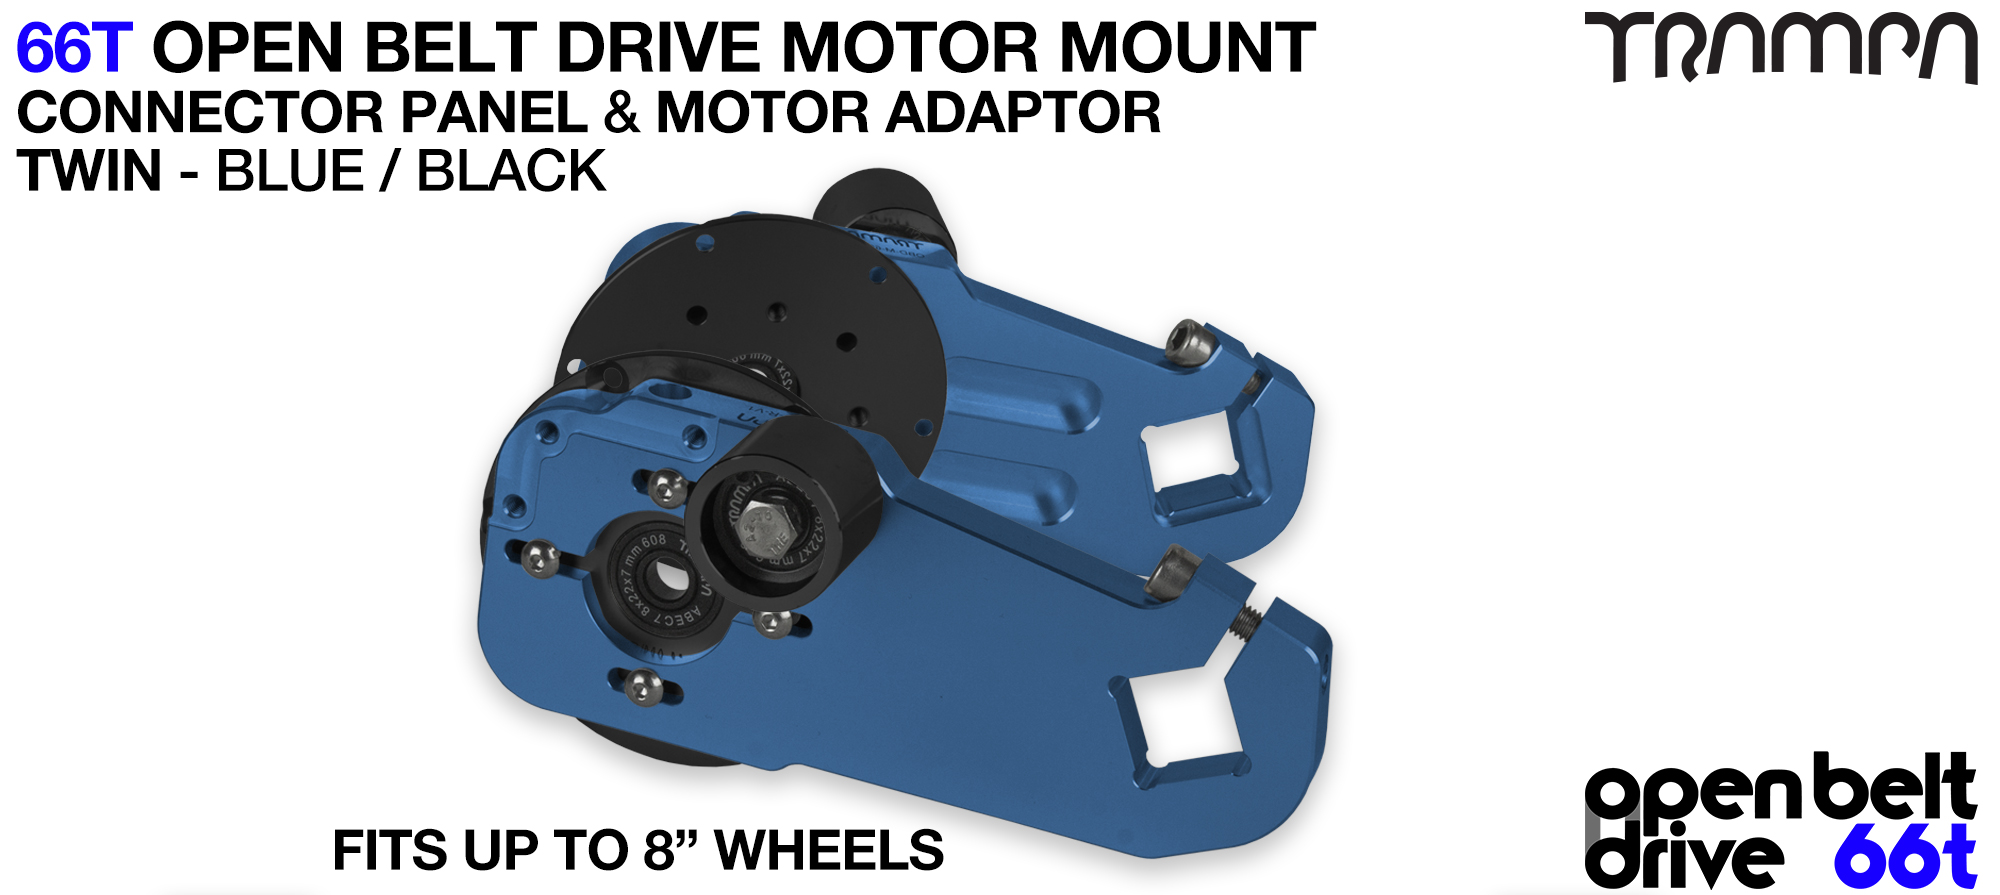 66T OPEN BELT DRIVE Motor Mount & Motor Adaptor - TWIN BLUE